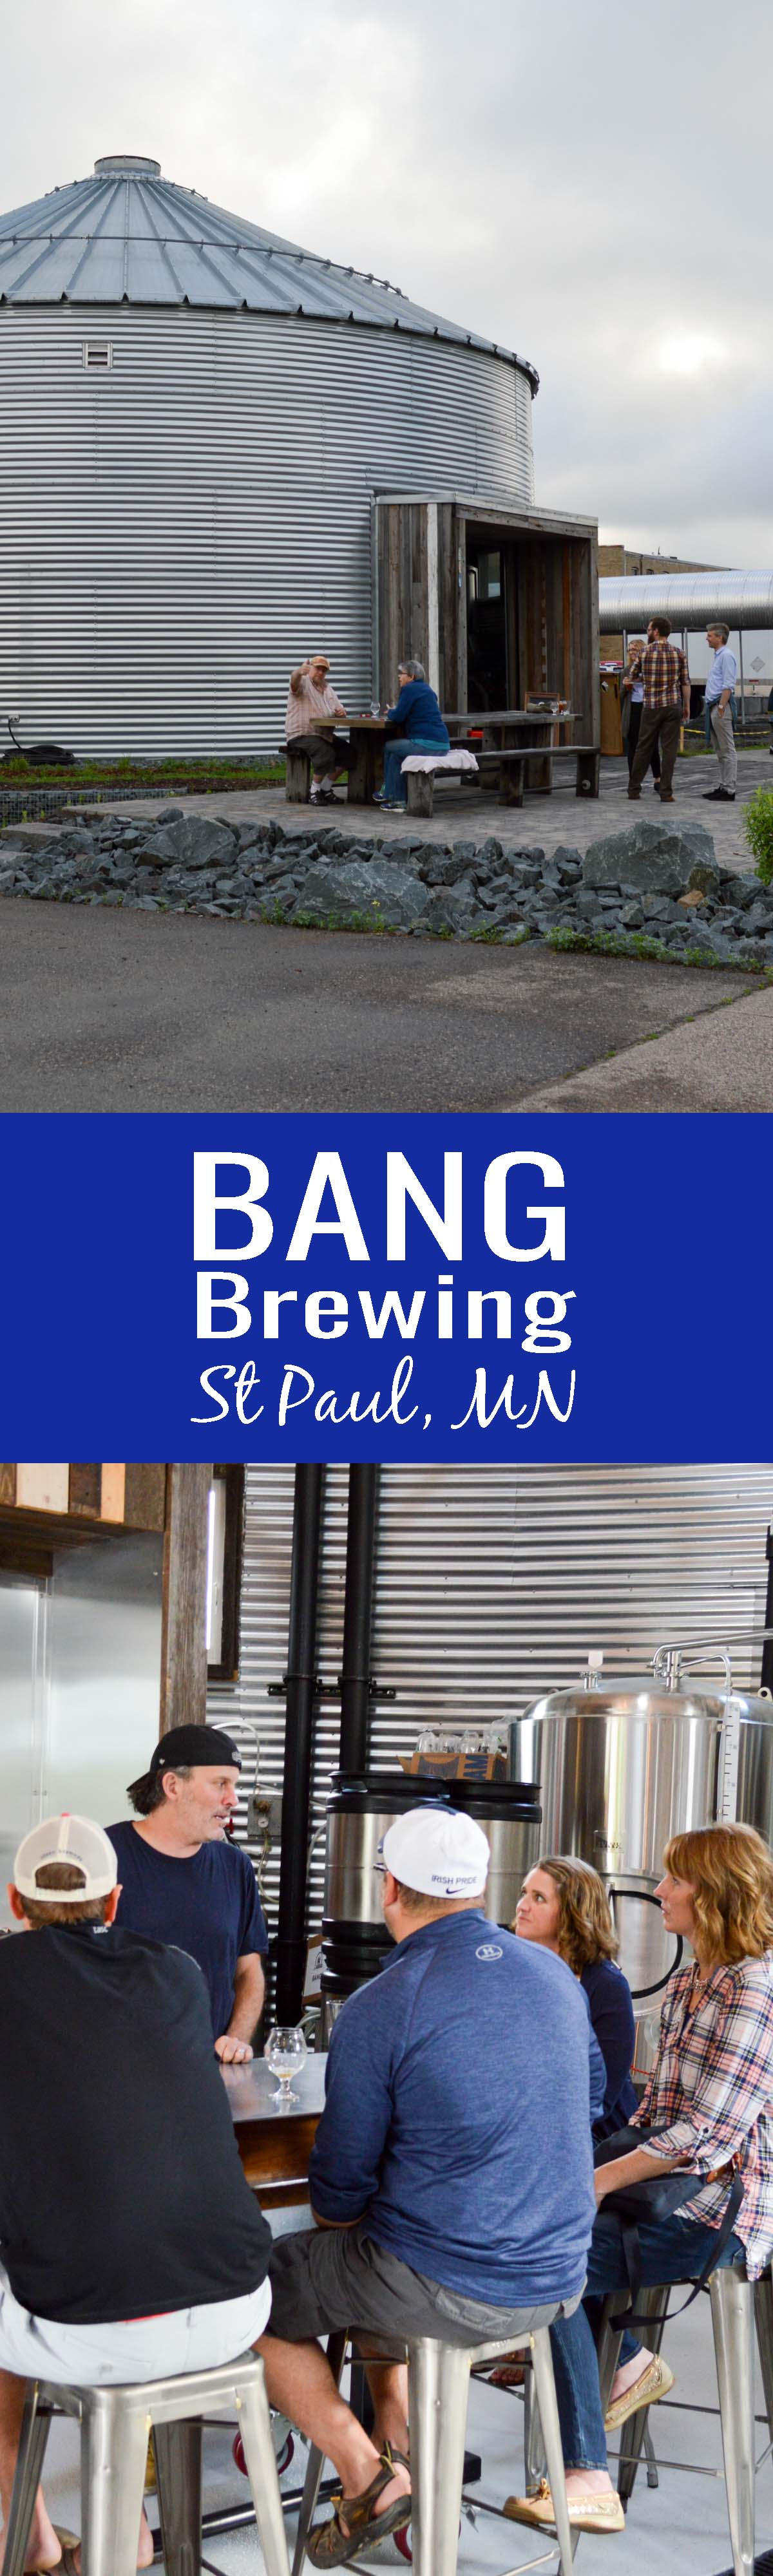 Taproom Talk: Bang Brewing, St Paul, Minnesota. Travel through St Paul's food and craft beer scene with Bang Brewing owner Sandy Boss-Febbo. Sandy offers a unique organic and sustainable twist to our typical craft beer and food guide!